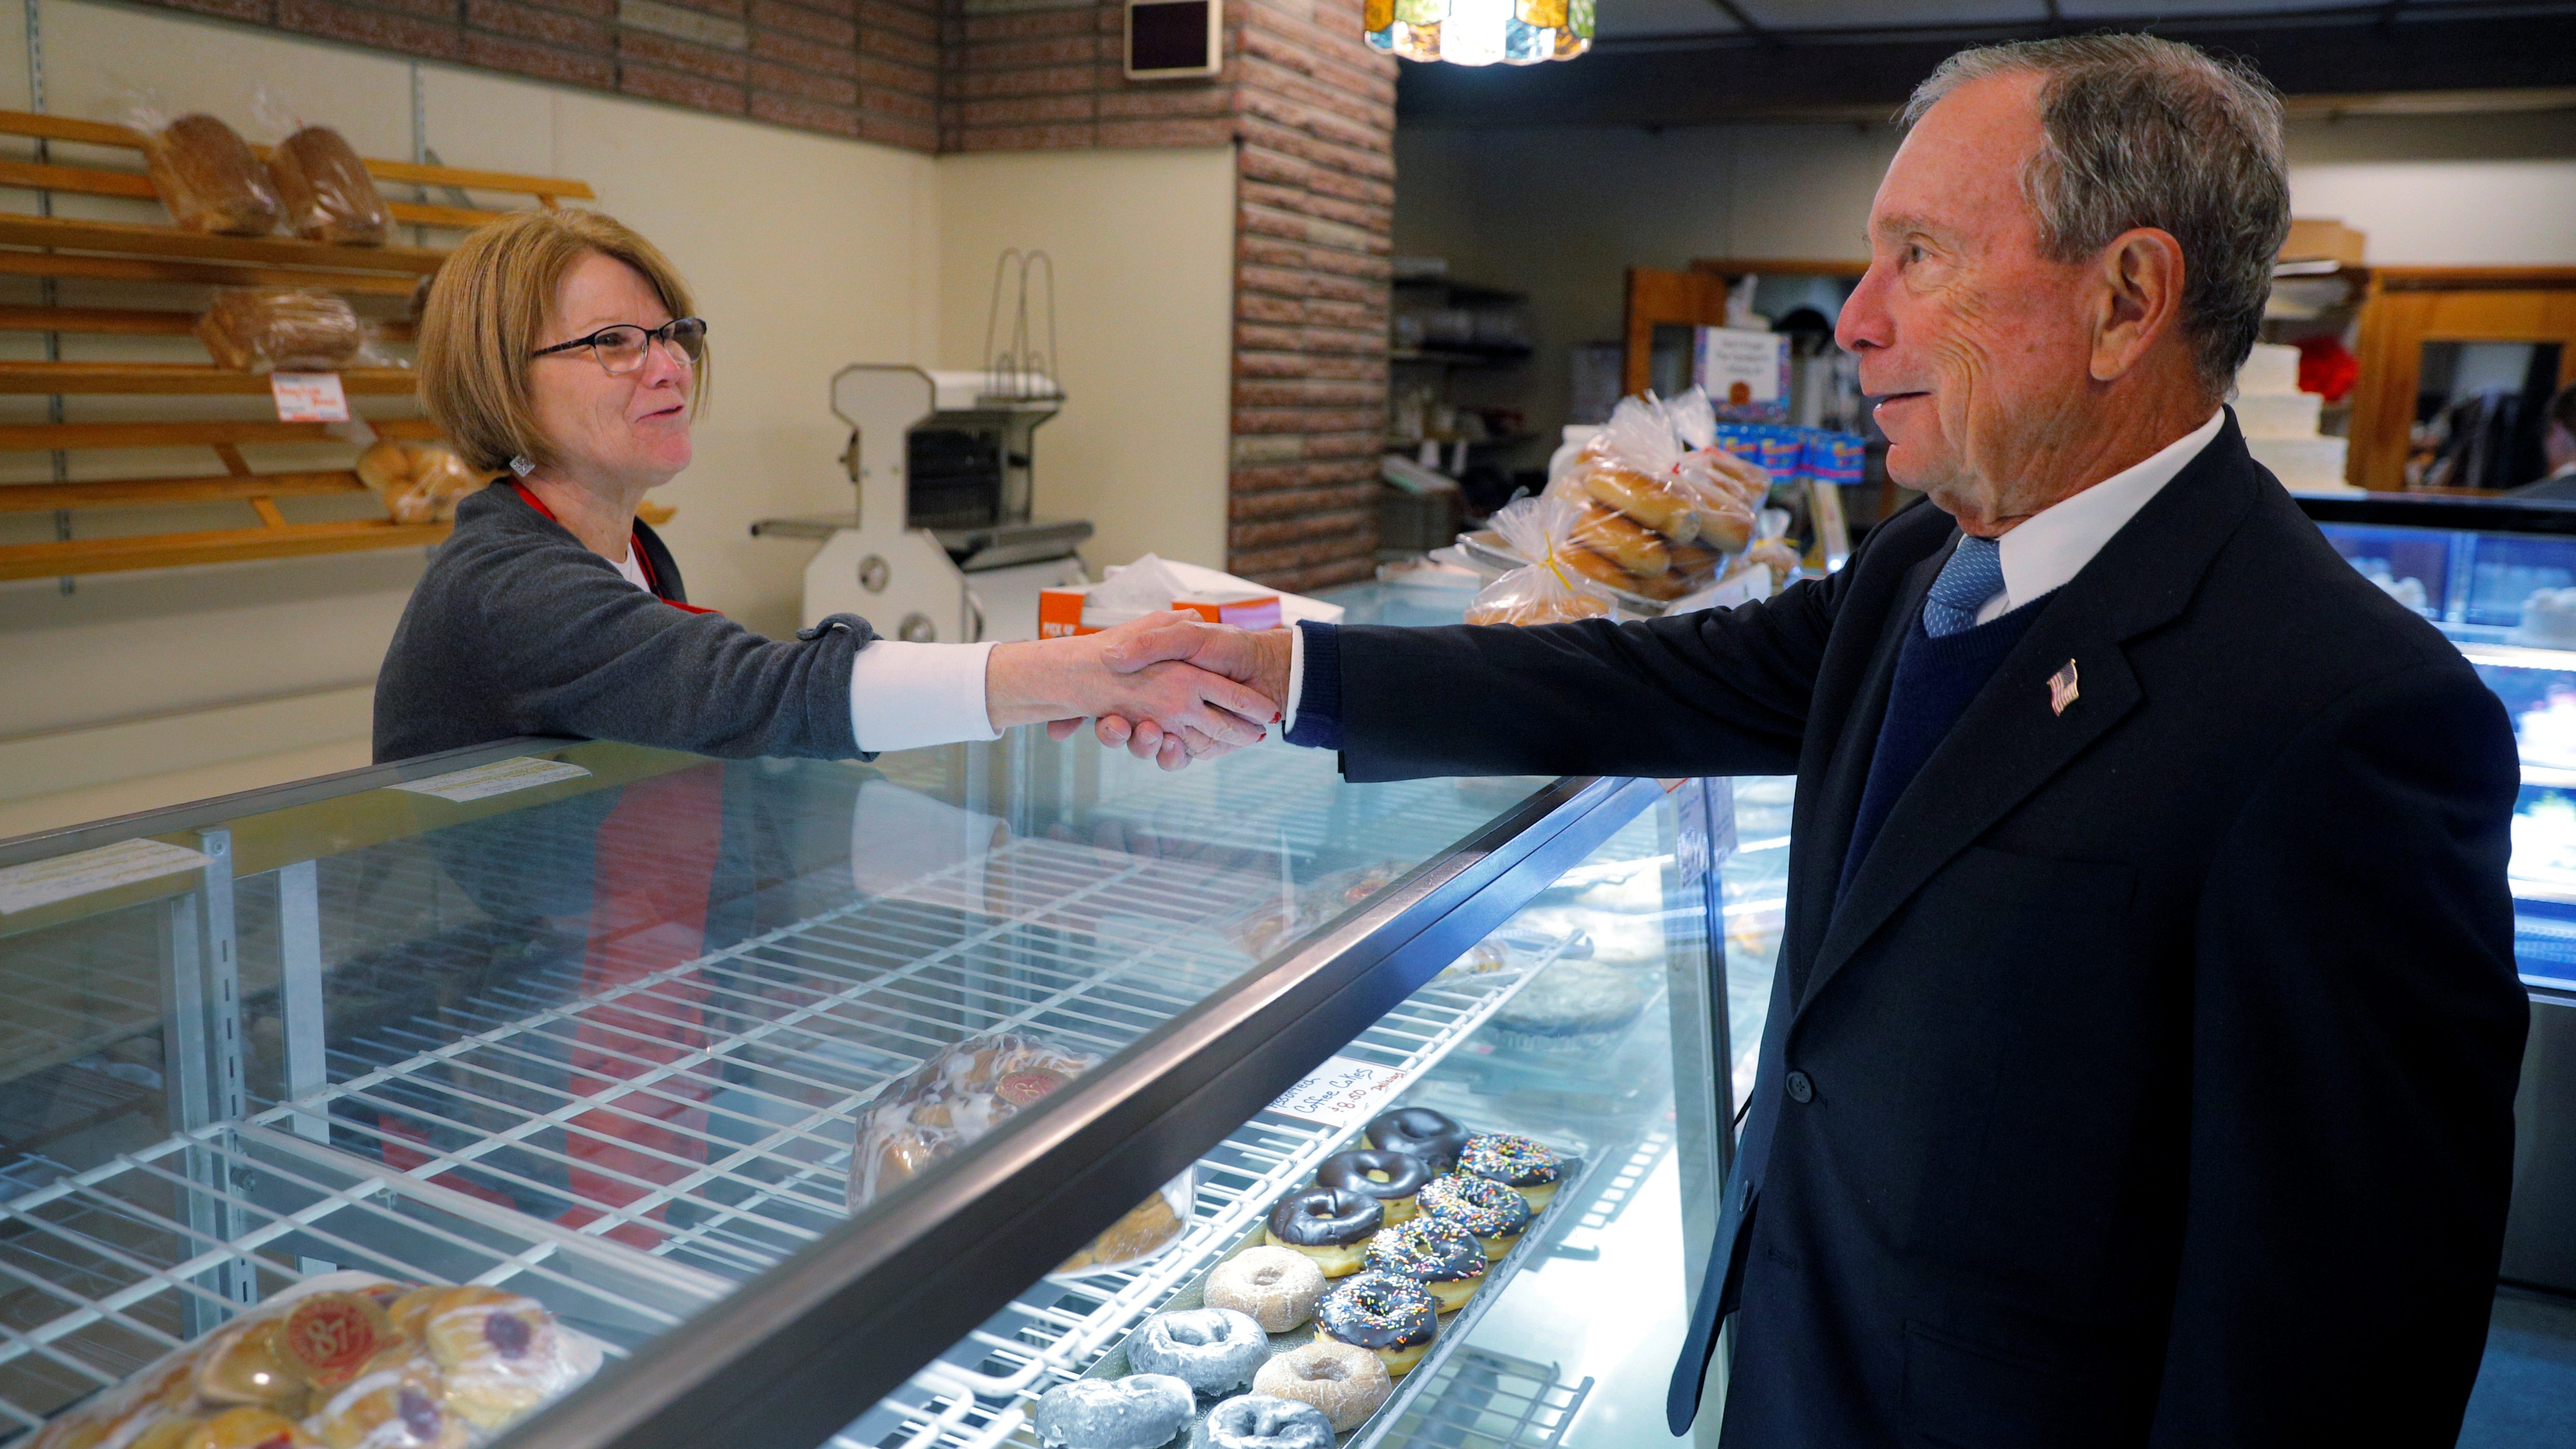 Mike Bloomberg shakes a woman's hand in a bakery in New Hampshire, an early voting state.